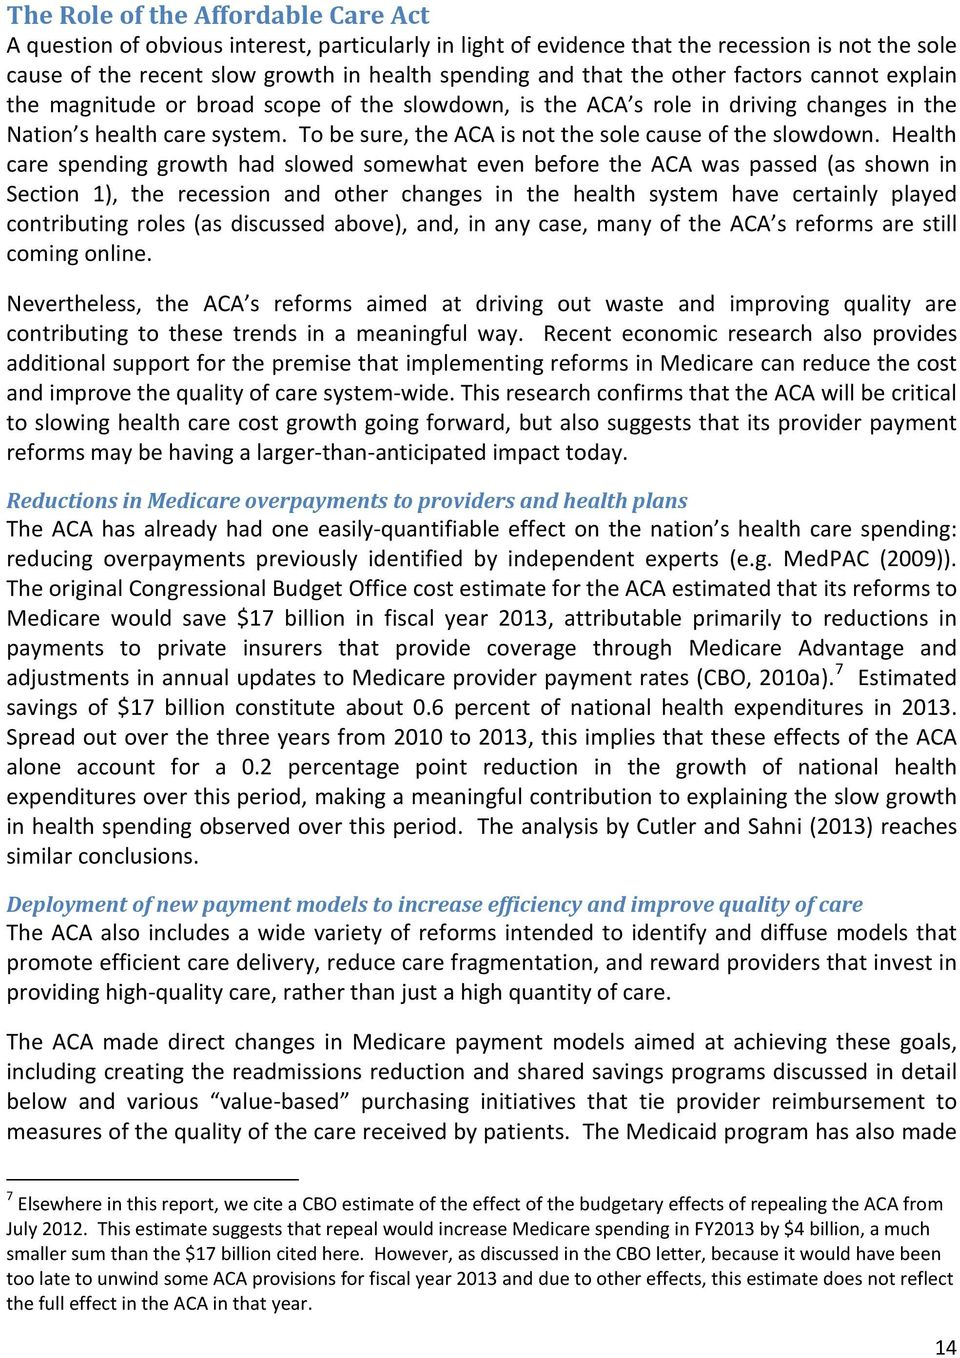 To be sure, the ACA is not the sole cause of the slowdown.